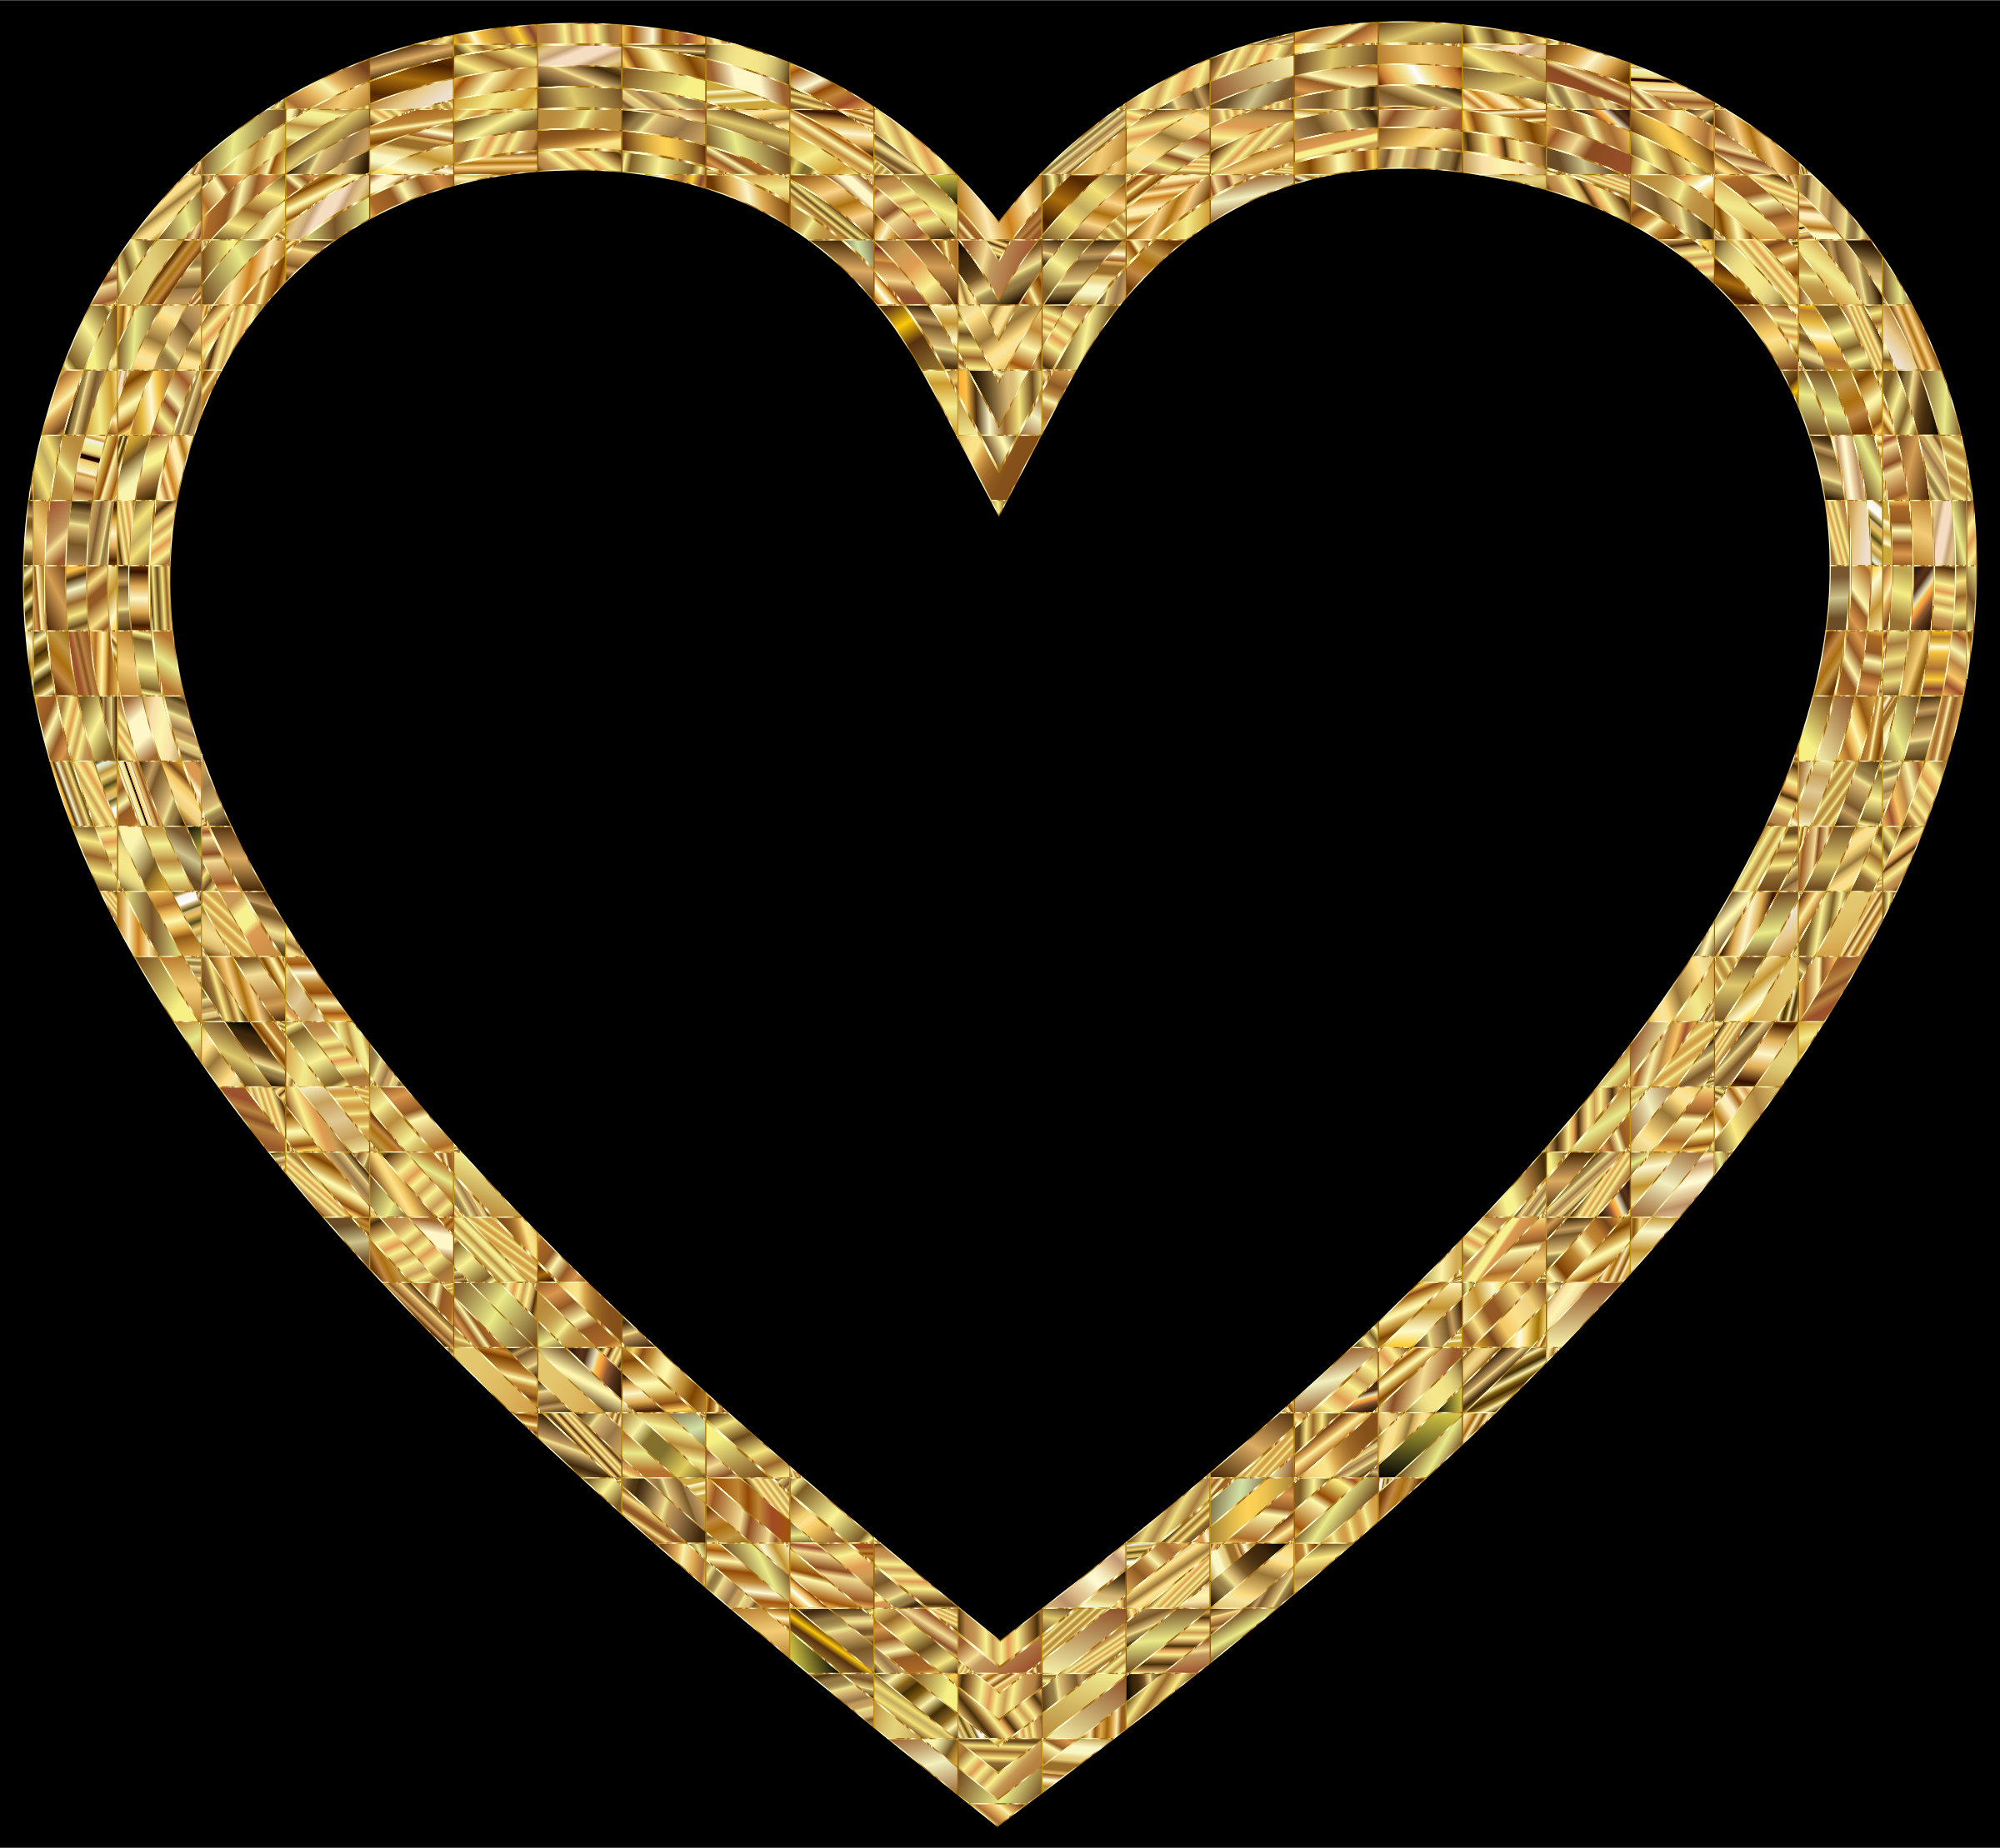 2 clipart gold. Golden heart with black